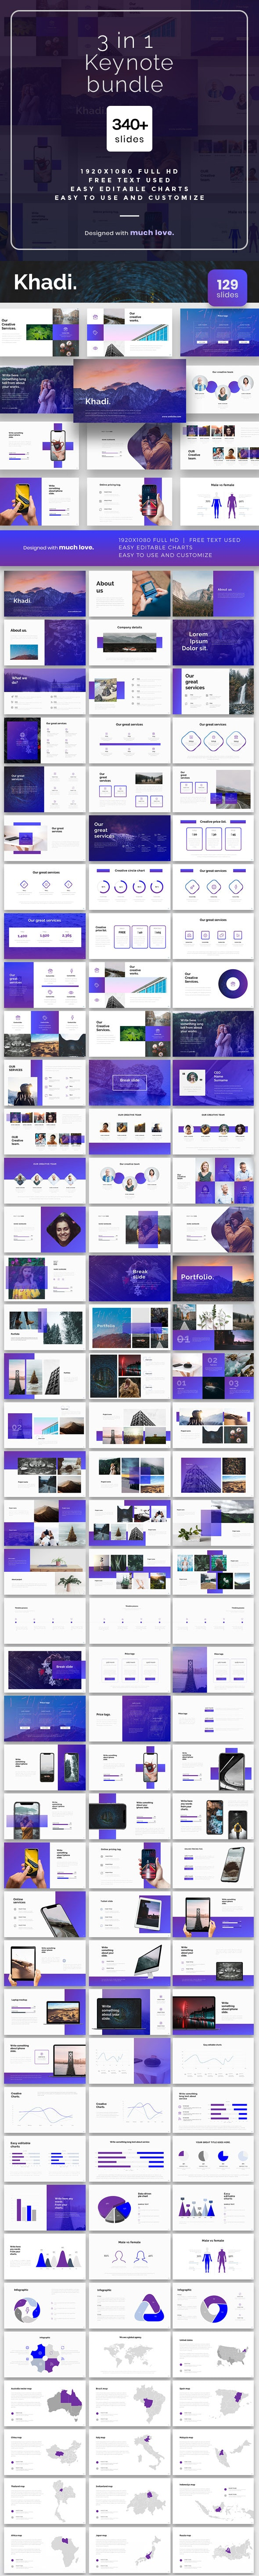 3 in1 Bundle Keynote Template - Keynote Templates Presentation Templates